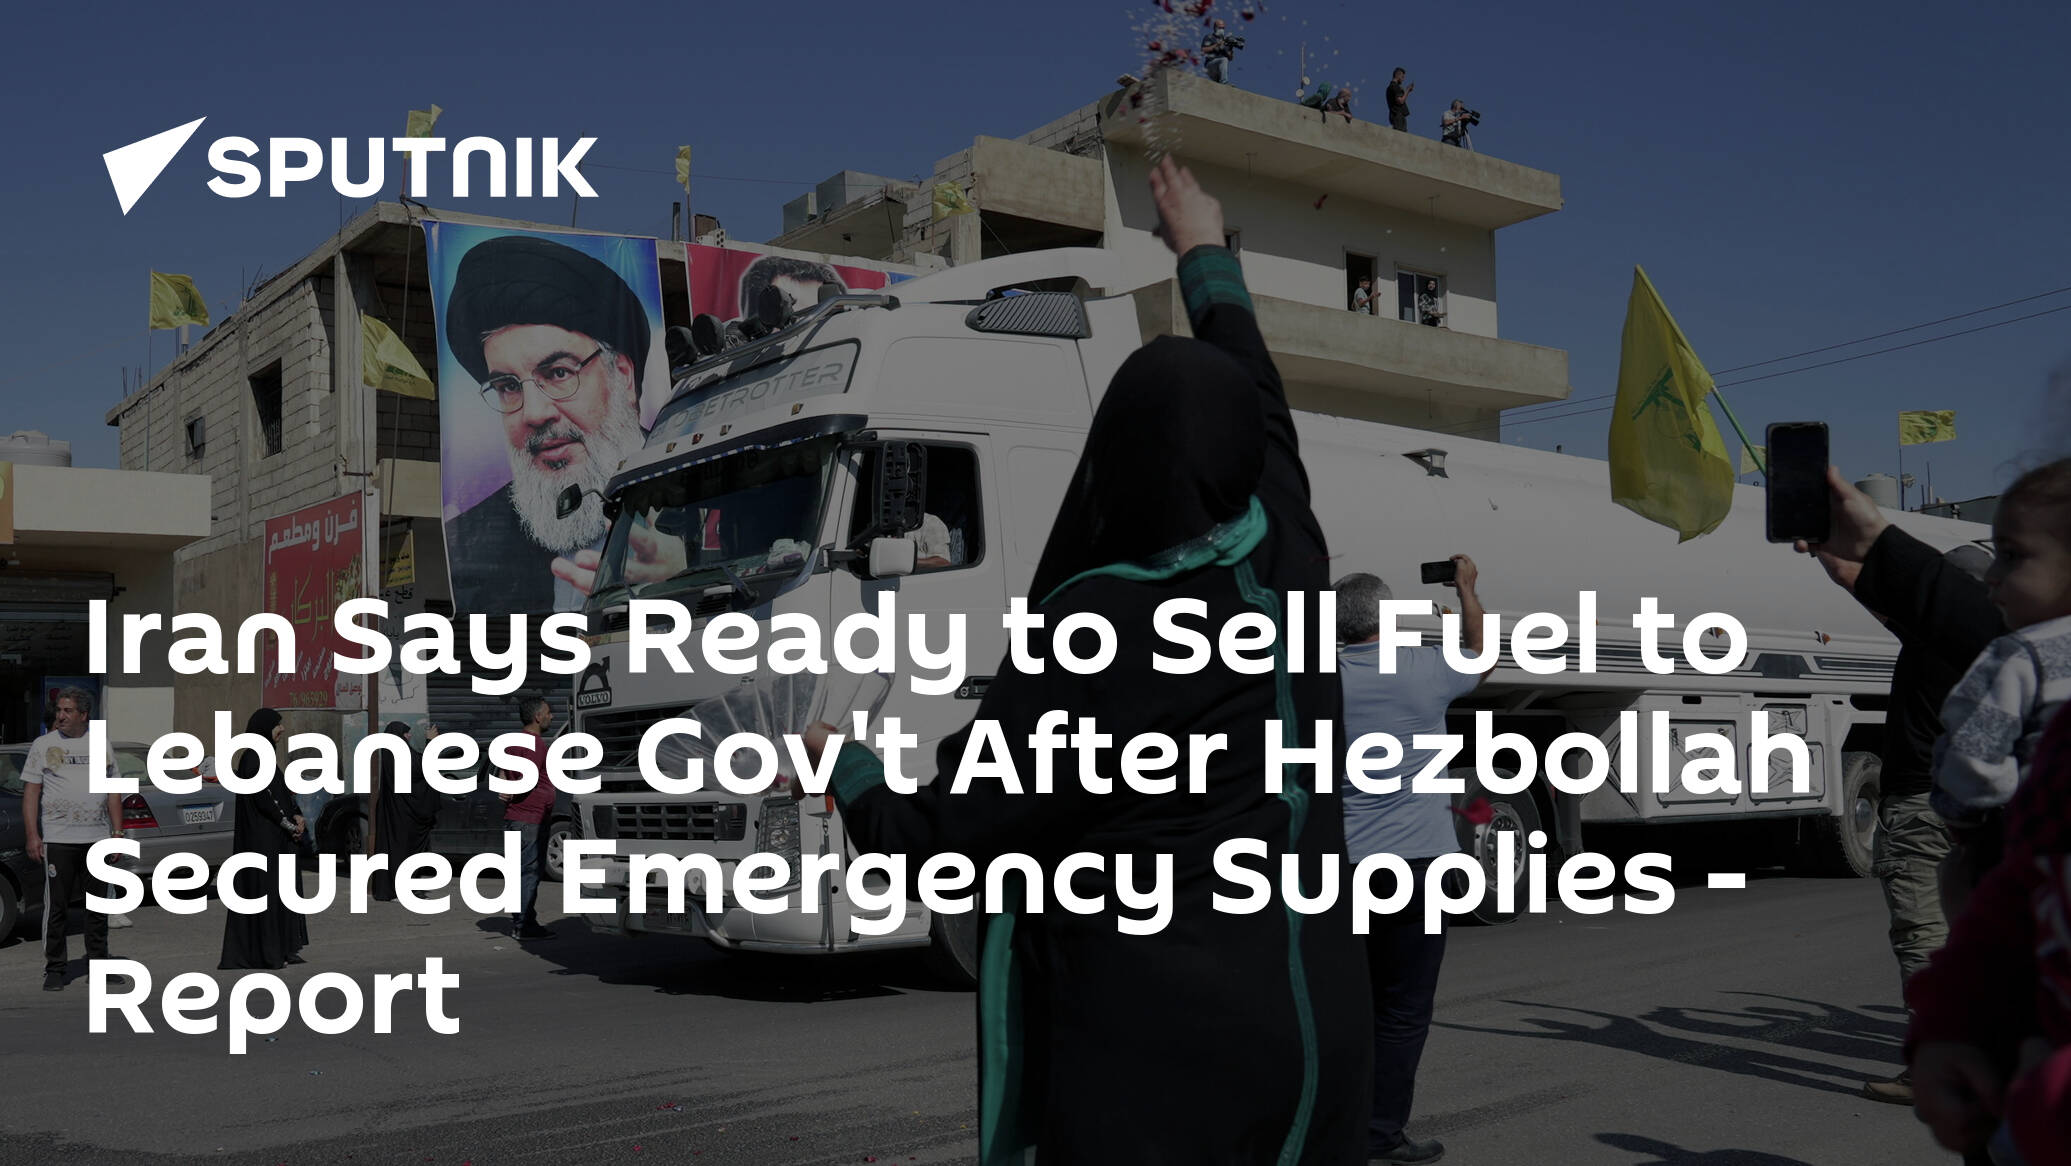 Iran Says Ready to Sell Fuel to Lebanese Gov't After Hezbollah Secured Emergency Supplies